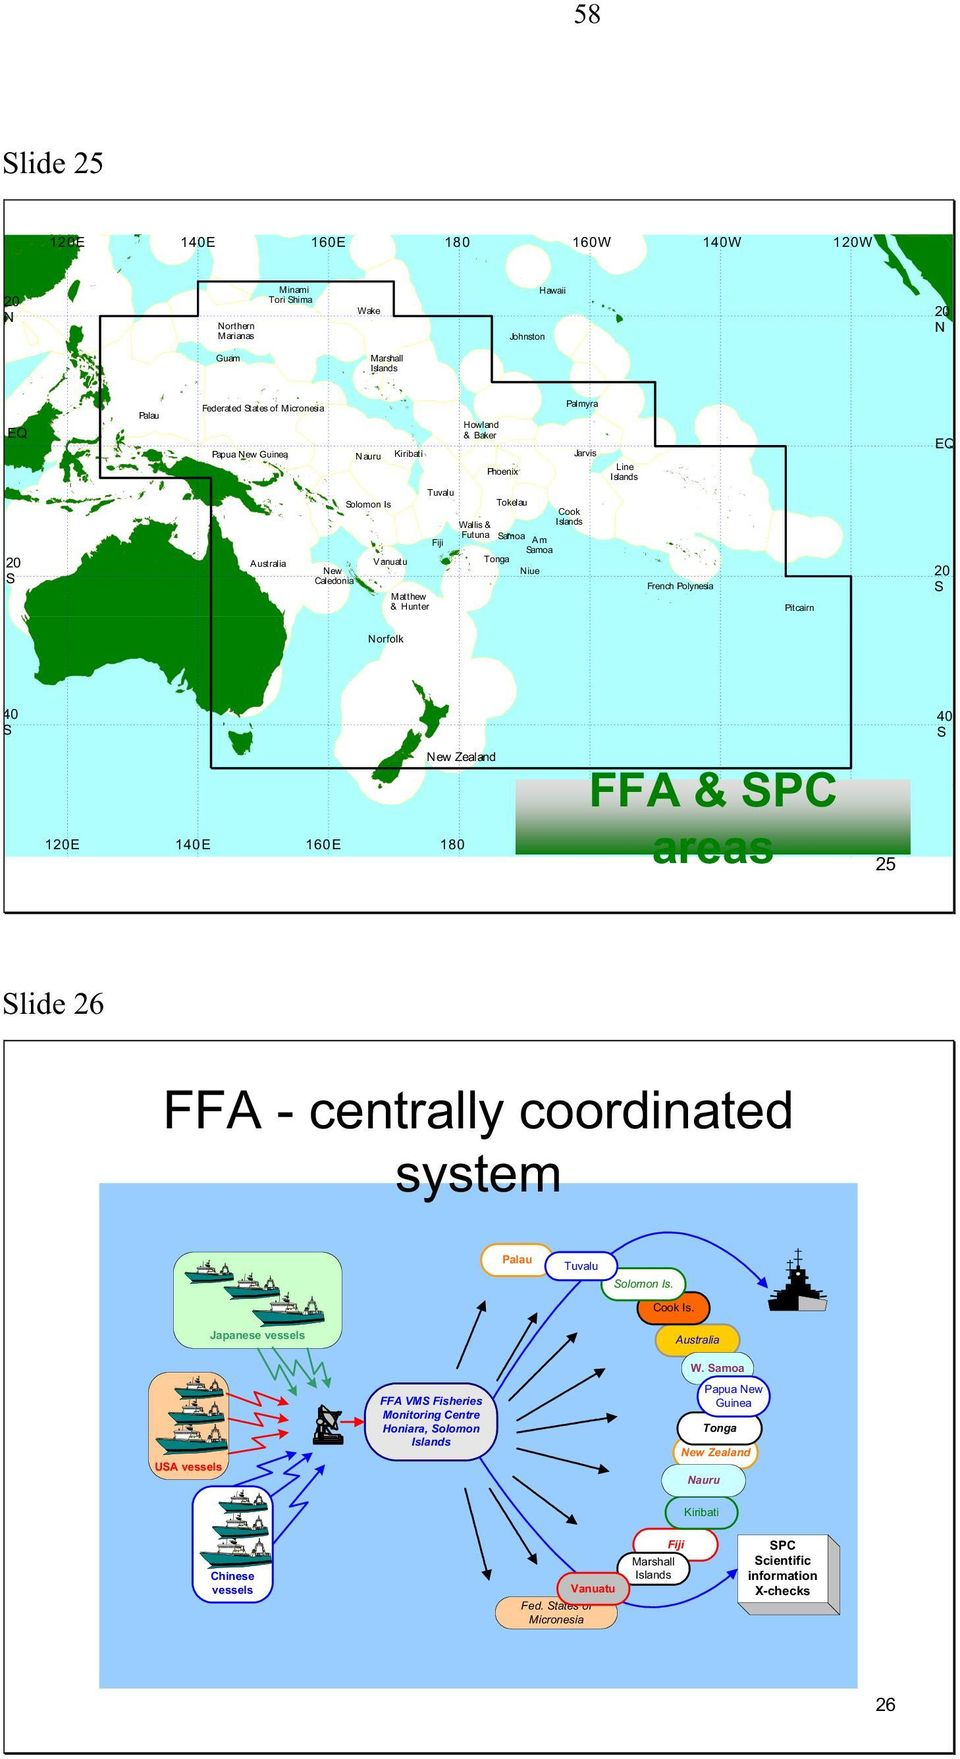 Caledonia Matthew & Hunter French Polynesia Pit cairn 20 S Norfolk 40 S 40 S 120E 140E 160E New Zealand FFA & SPC areas 180 160W 140W 120W 25 Slide 26 FFA - centrally coordinated system Palau Tuvalu